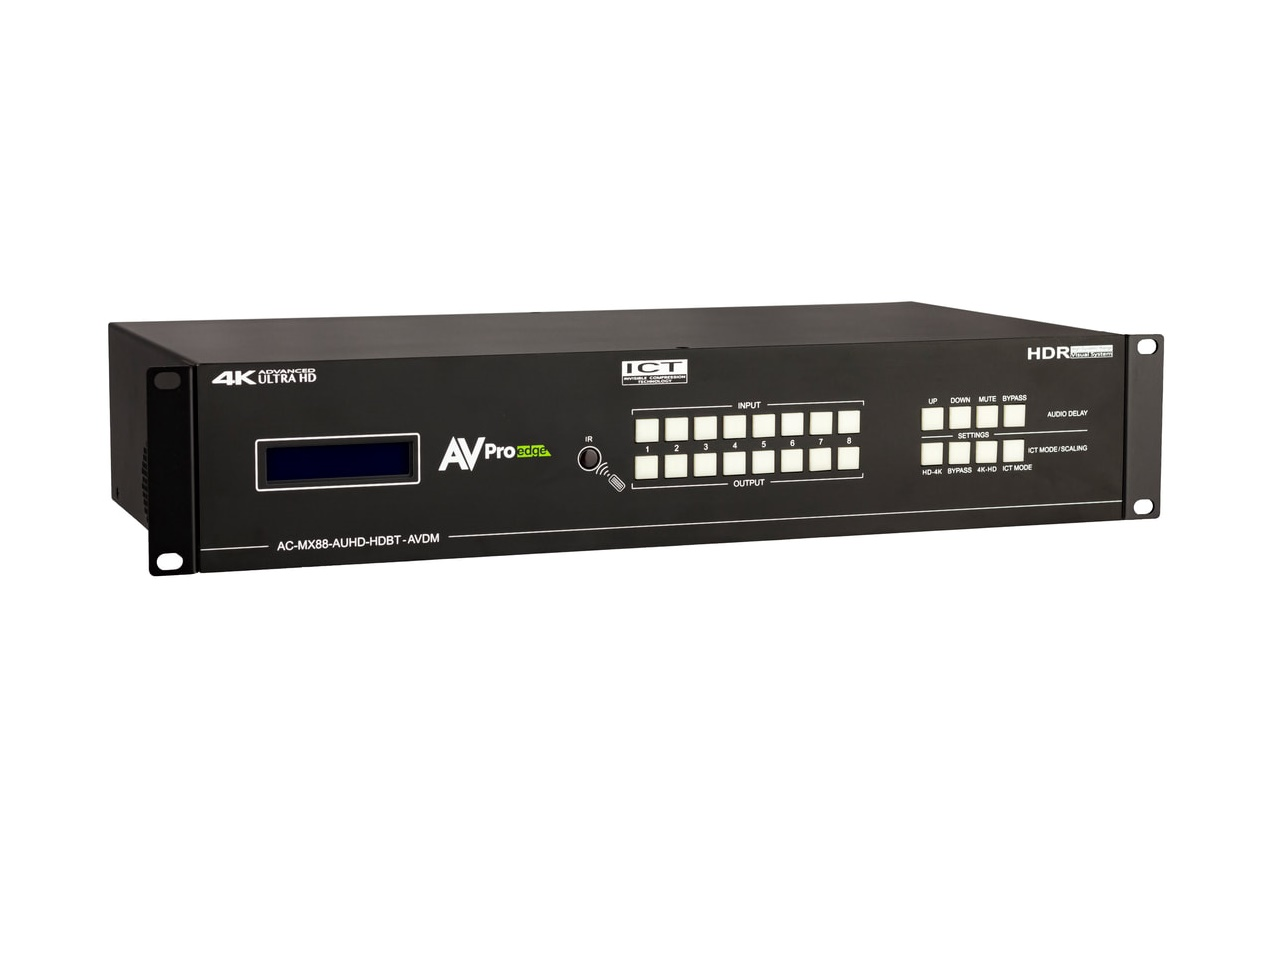 AVPro Edge AC-MX88-AUHD-HDBT-AVDM 8 HDMI Input/8 HDBaseT/HDMI Output Matrix Switcher with Dolby and DTS Downmixing